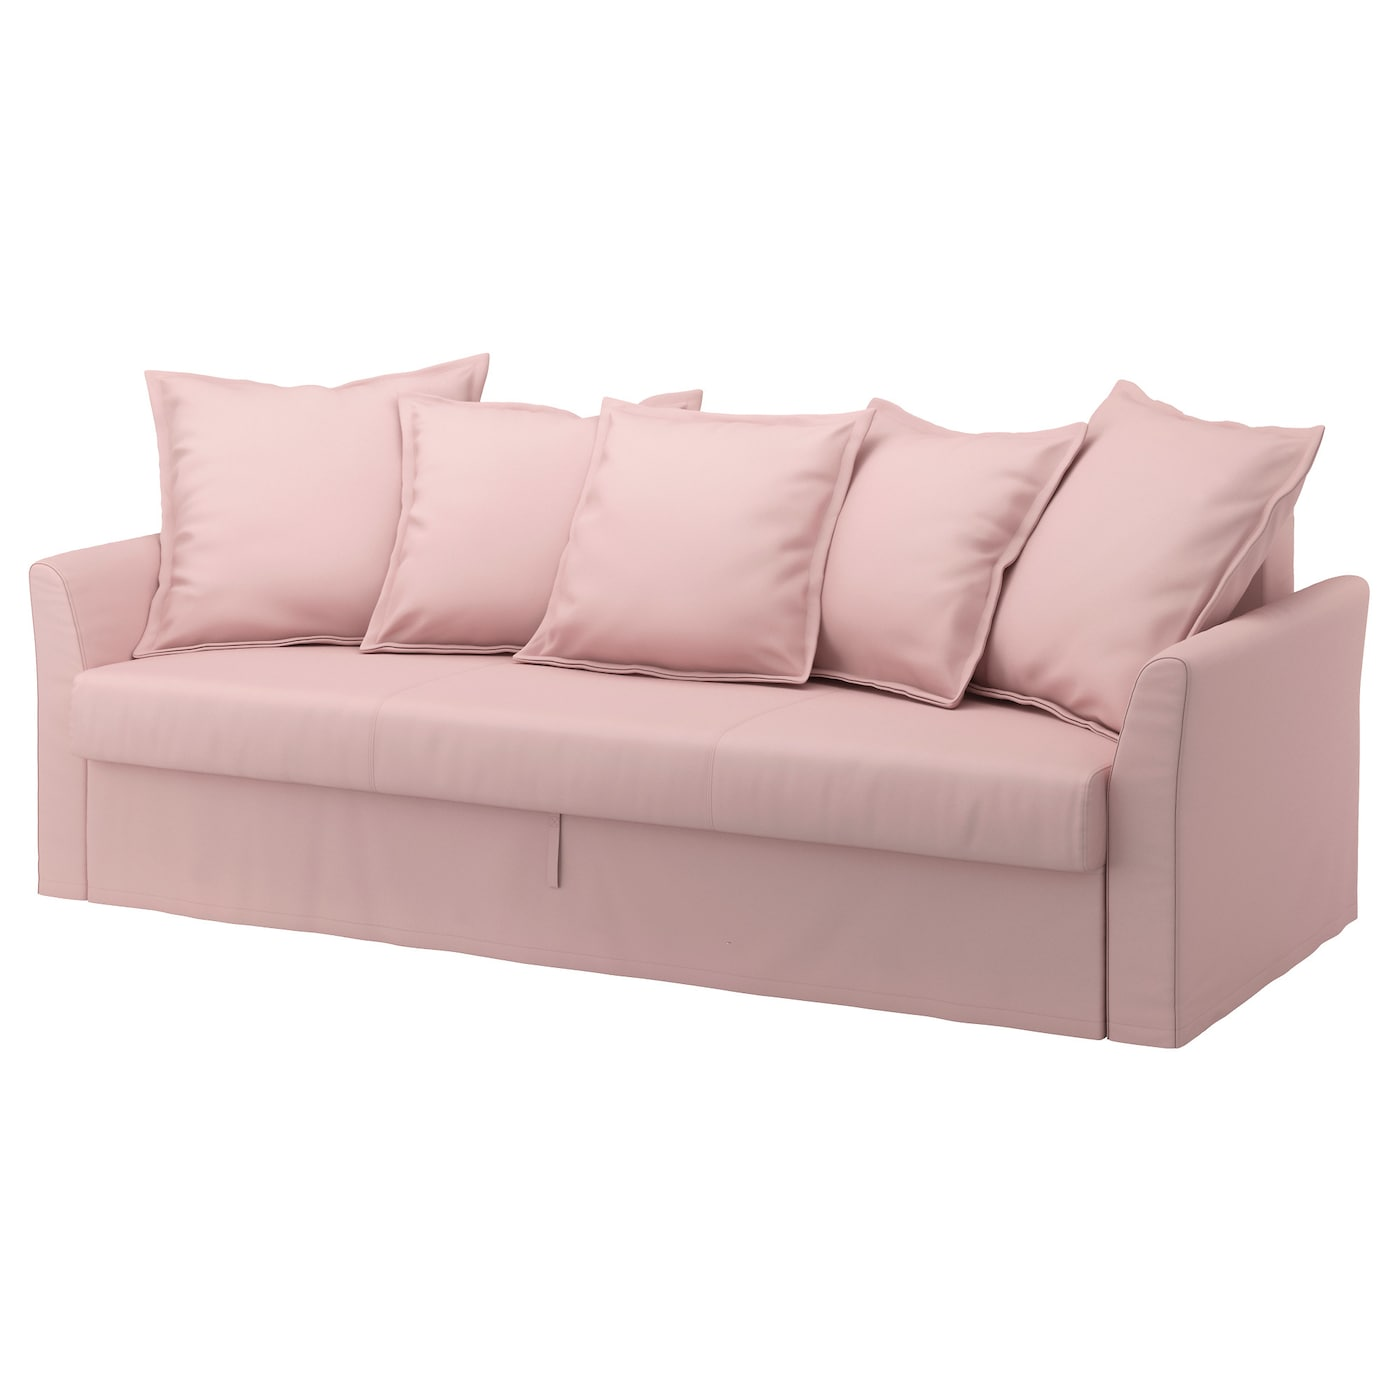 Holmsund three seat sofa bed ransta light pink ikea for Sofa bed chair